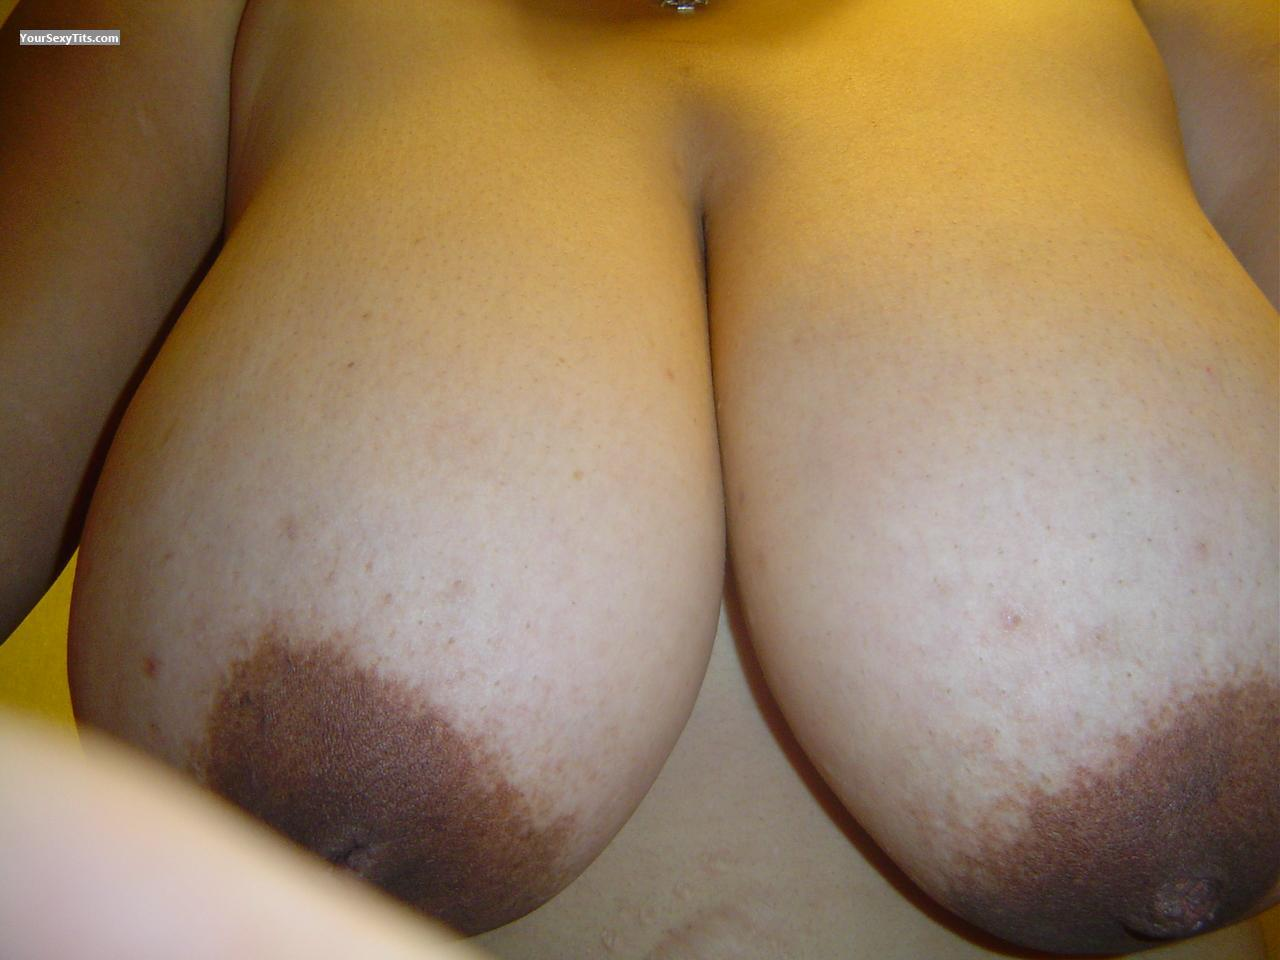 Tit Flash: Very Big Tits - Nibbles from United States